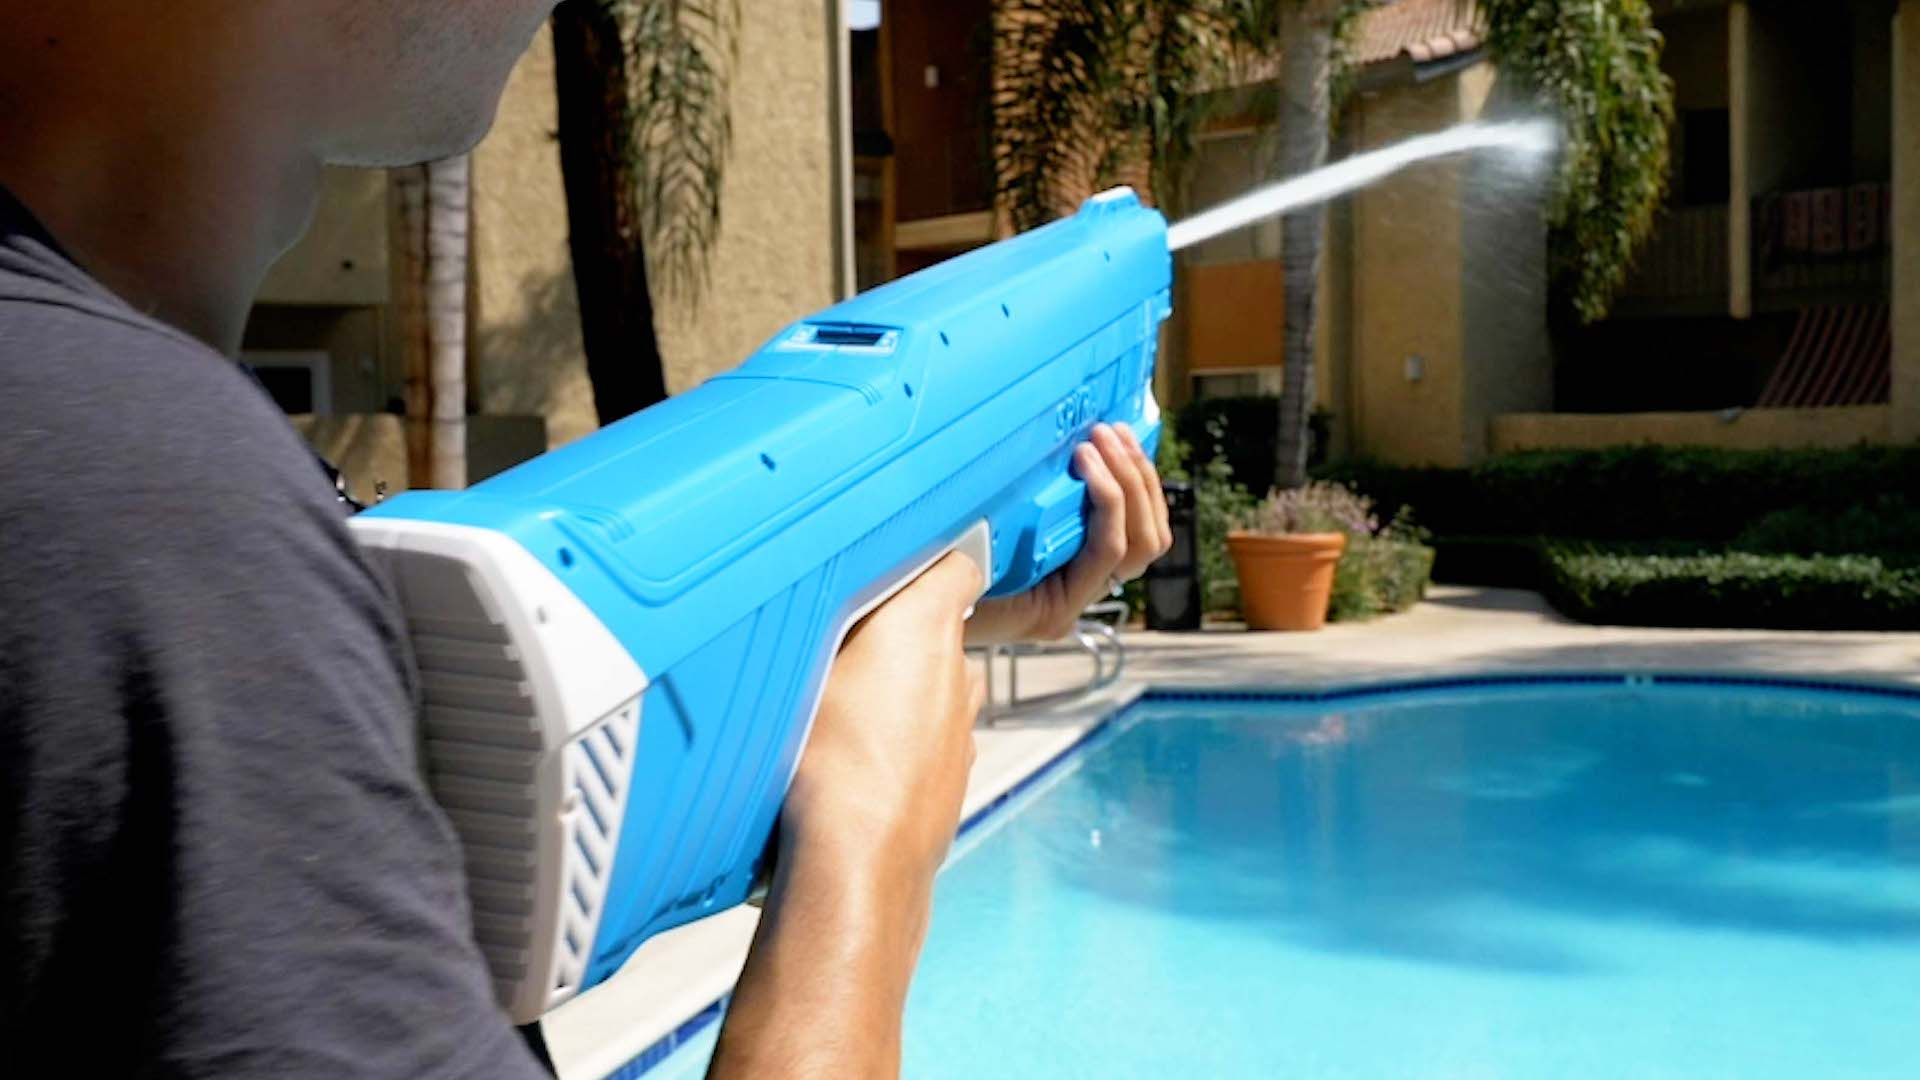 Video: SpyraTwo hands-on: The ultimate water gun